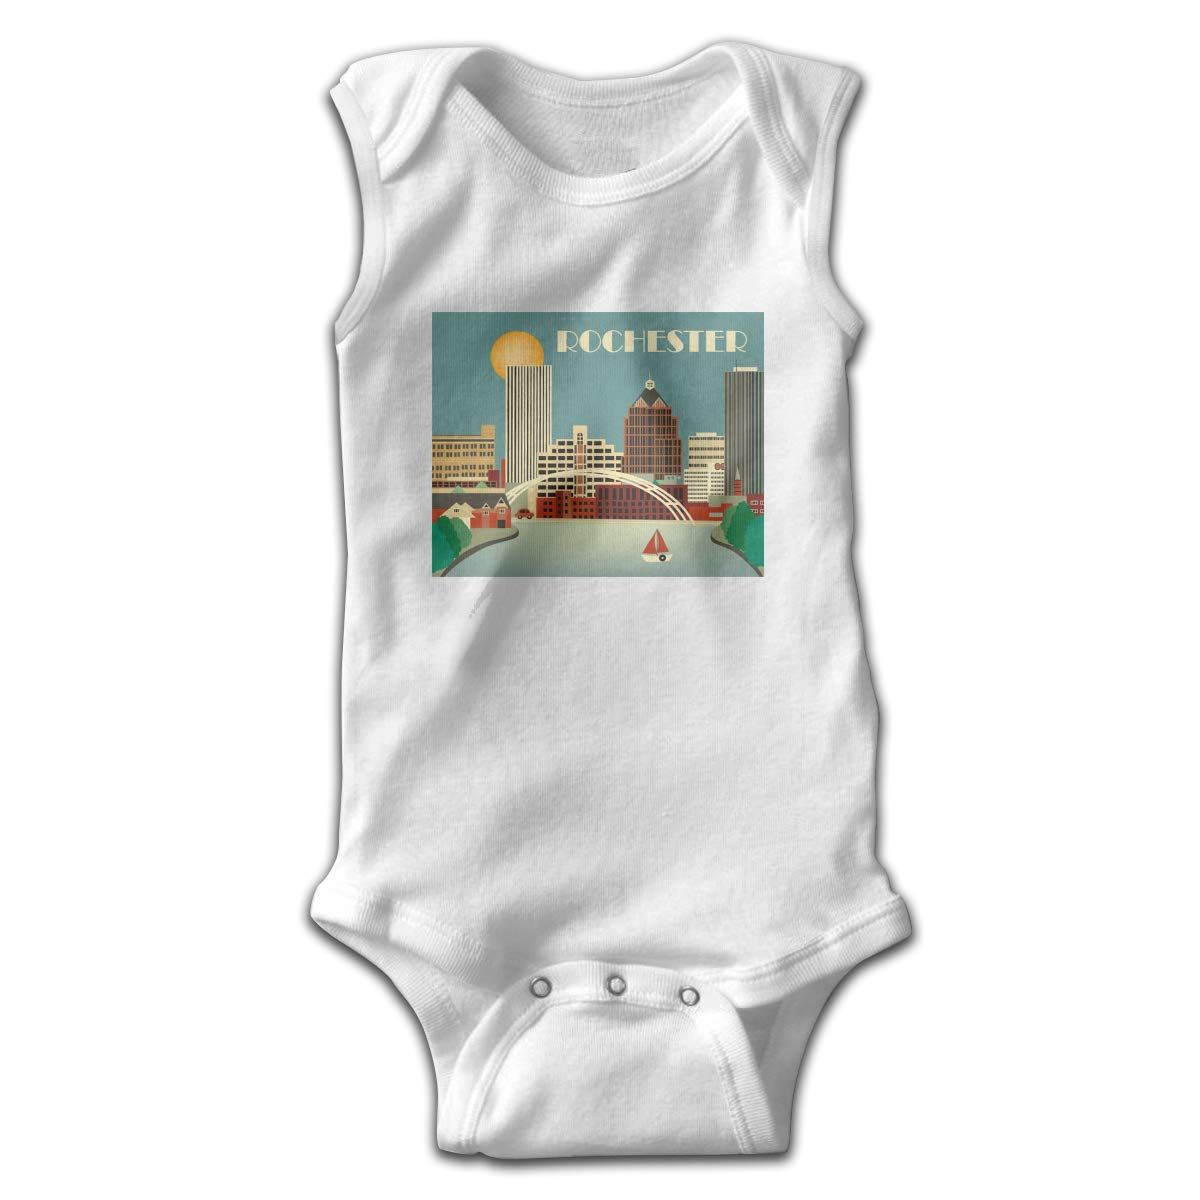 Infant Baby Boys Rompers Sleeveless Cotton Onesie,Rochester New York Outfit Spring Pajamas